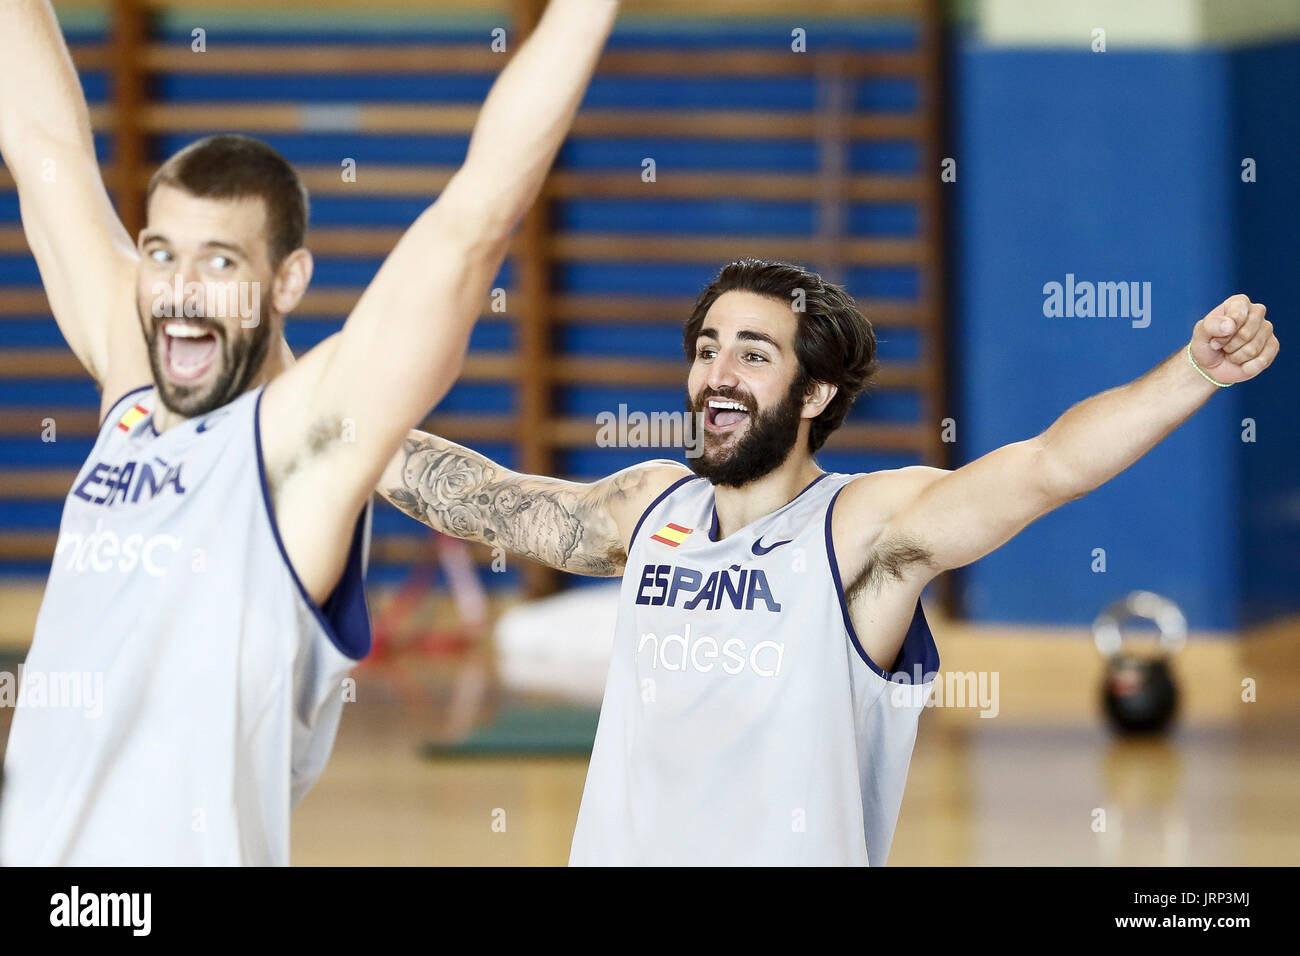 4a8dfa6c01f Spanish players Marc Gasol (L) and Ricky Rubio take part in a Spanish  national basketball team's training session in Madrid, Spain, 06 August  2017.